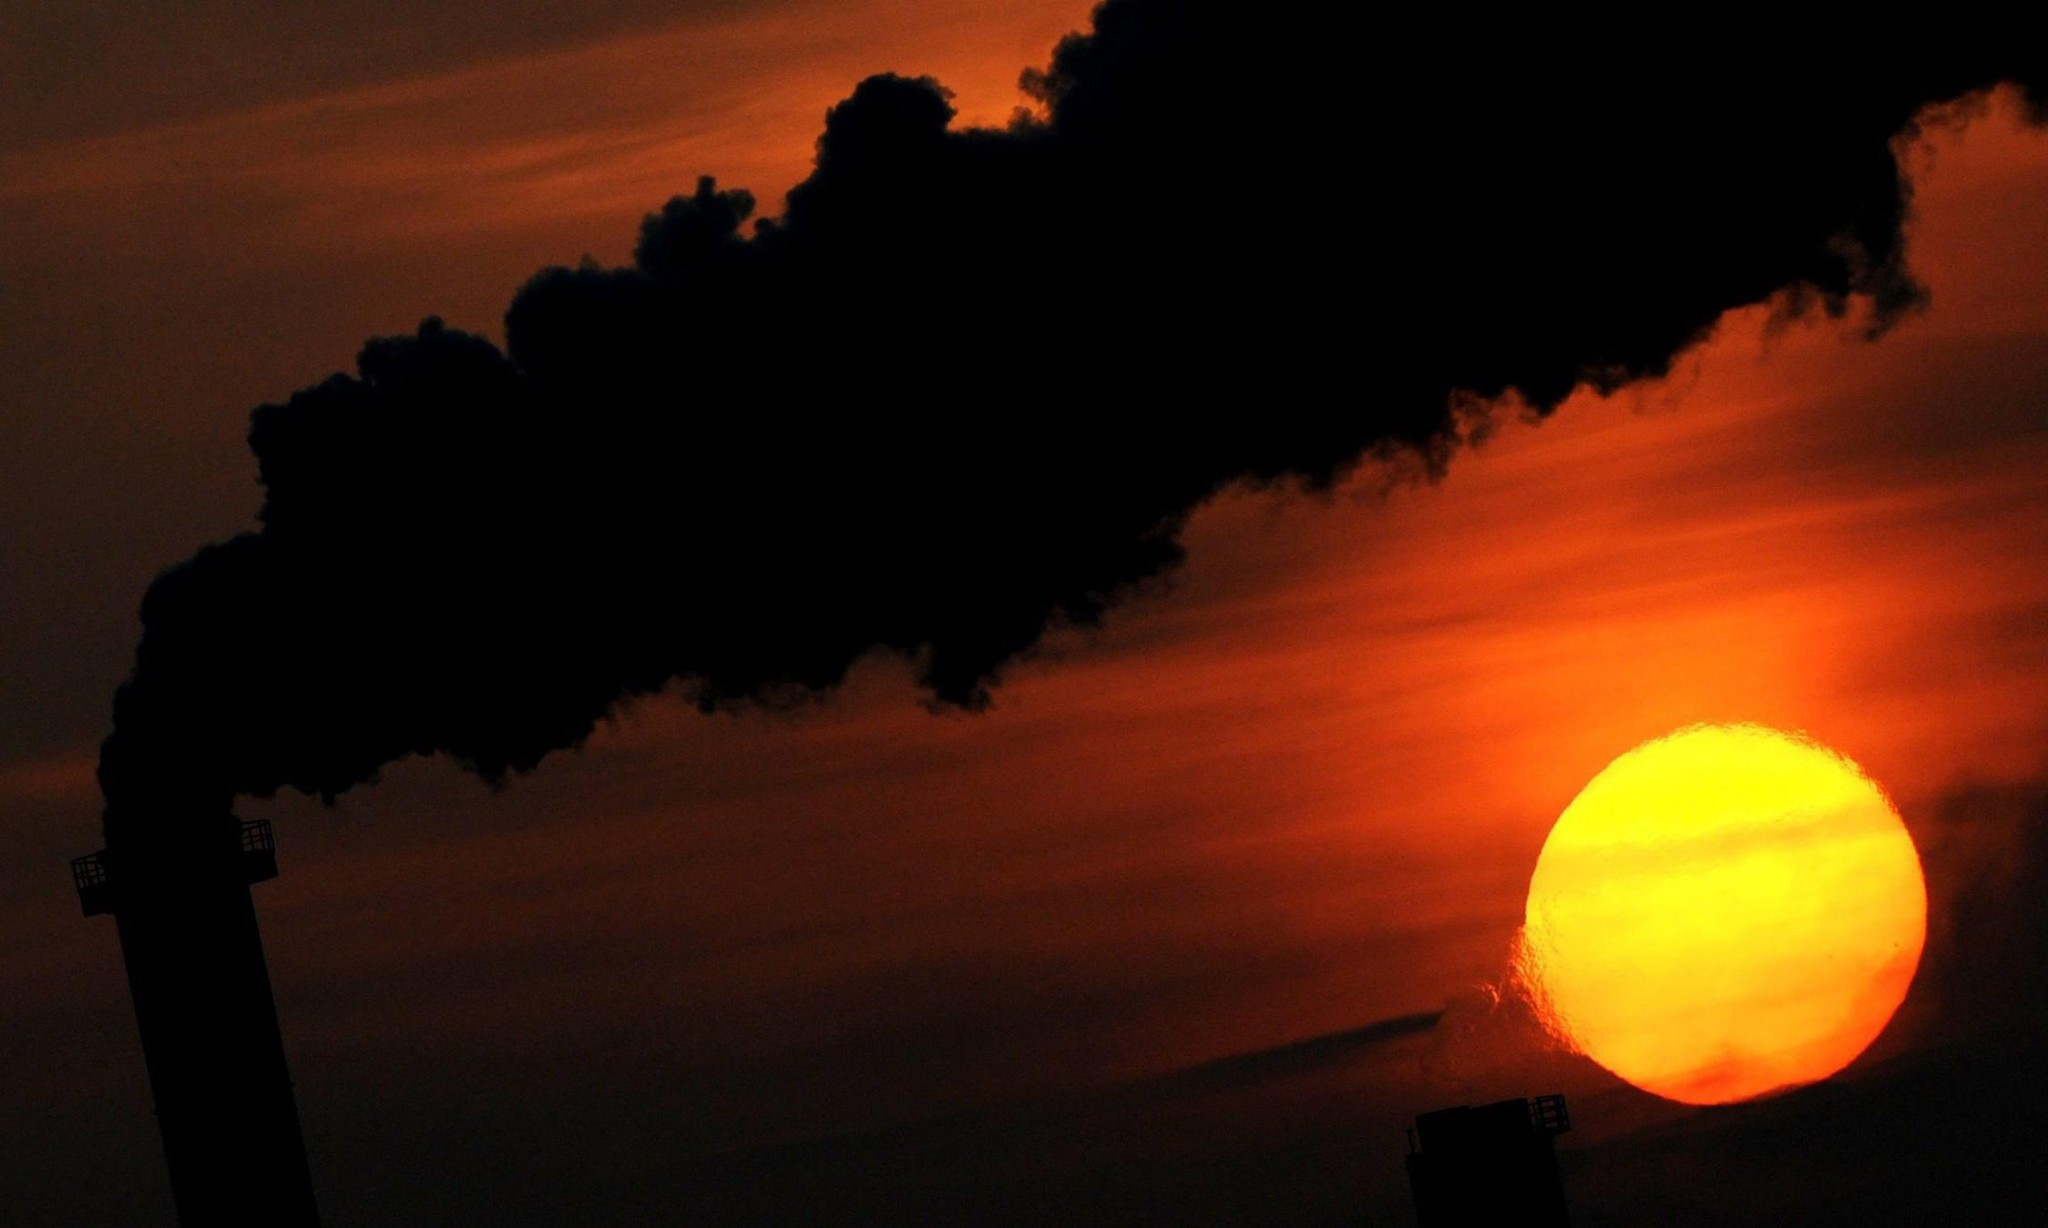 Human-induced climate change began earlier than previously thought